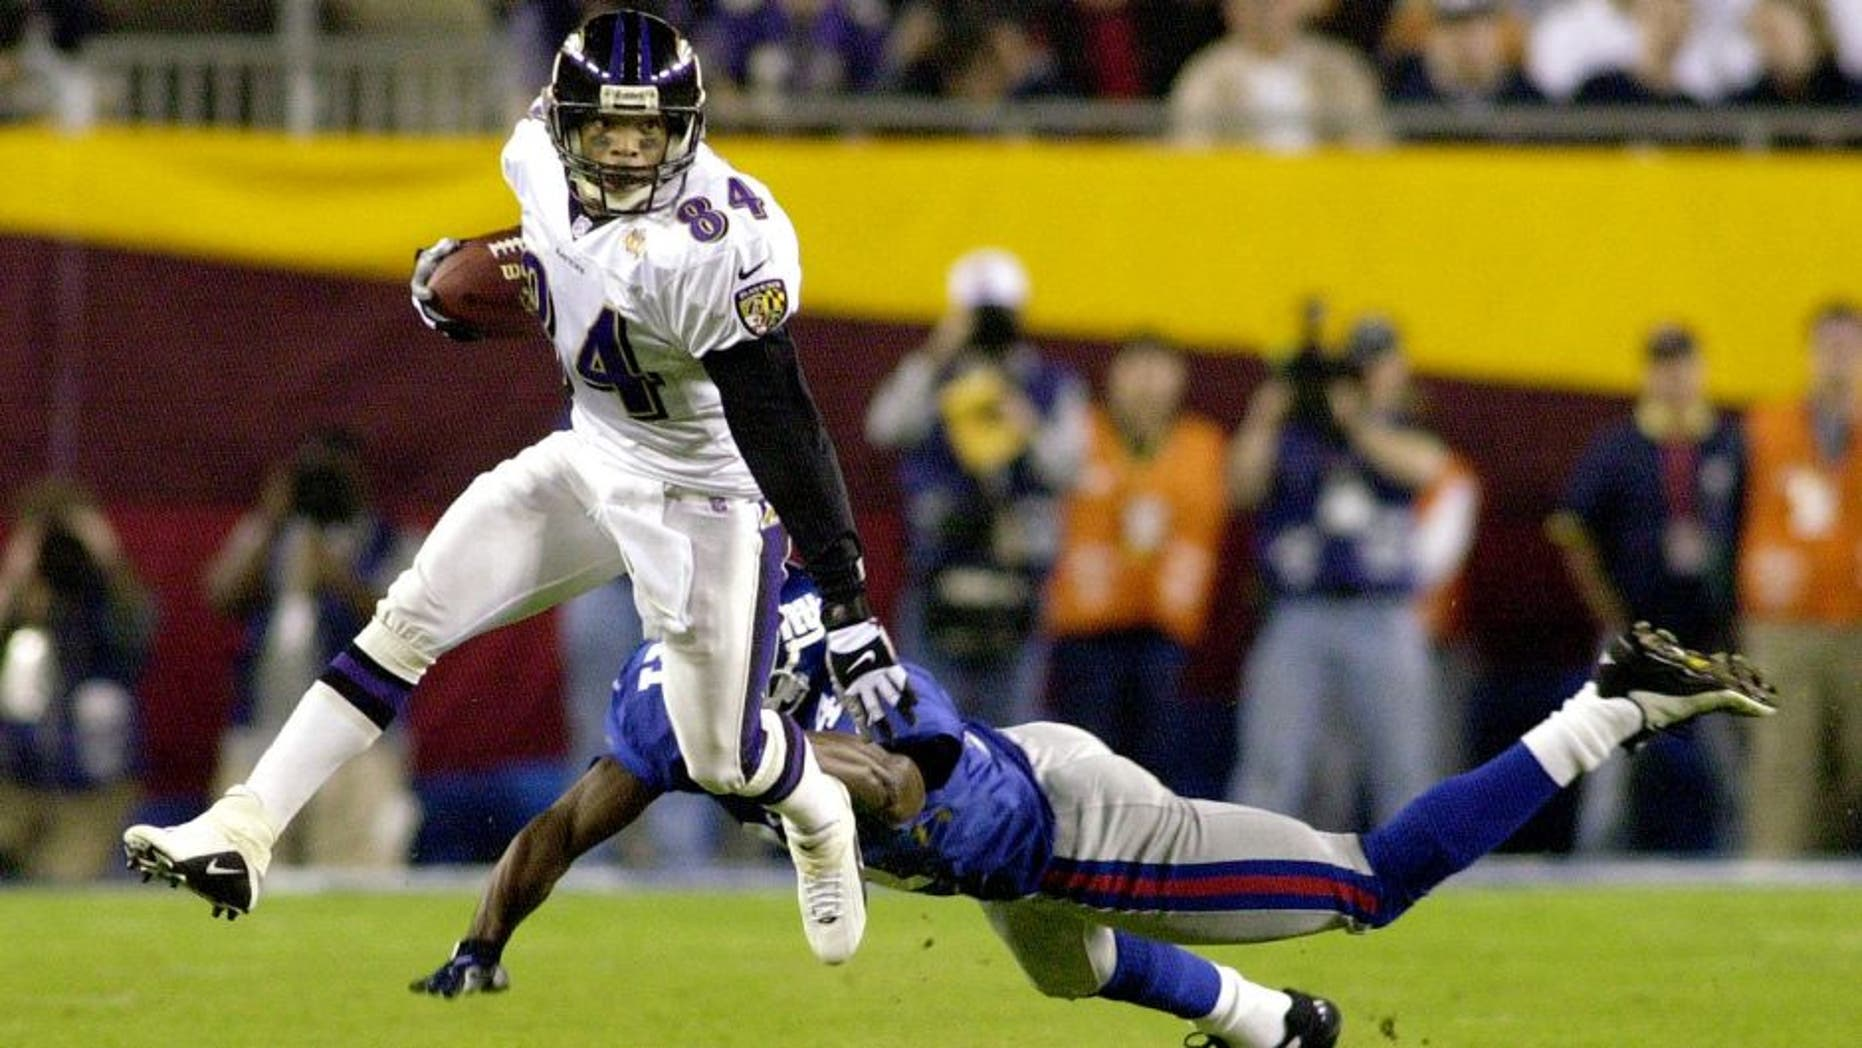 TAMPA, FL - JANUARY 28: Baltimore Ravens' wide receiver Jermaine Lewis (L) avoids an open field tackle by Dave Thomas of the New York Giant defender during first half action in Super Bowl XXXV 28 January, 2001, at Raymond James Stadium in Tampa, Florida. The New York Giants and the Baltimore Ravens are playing for the Vince Lombardi Trophy and the NFL championship. (Photo credit should read PETER MUHLY/AFP/Getty Images)